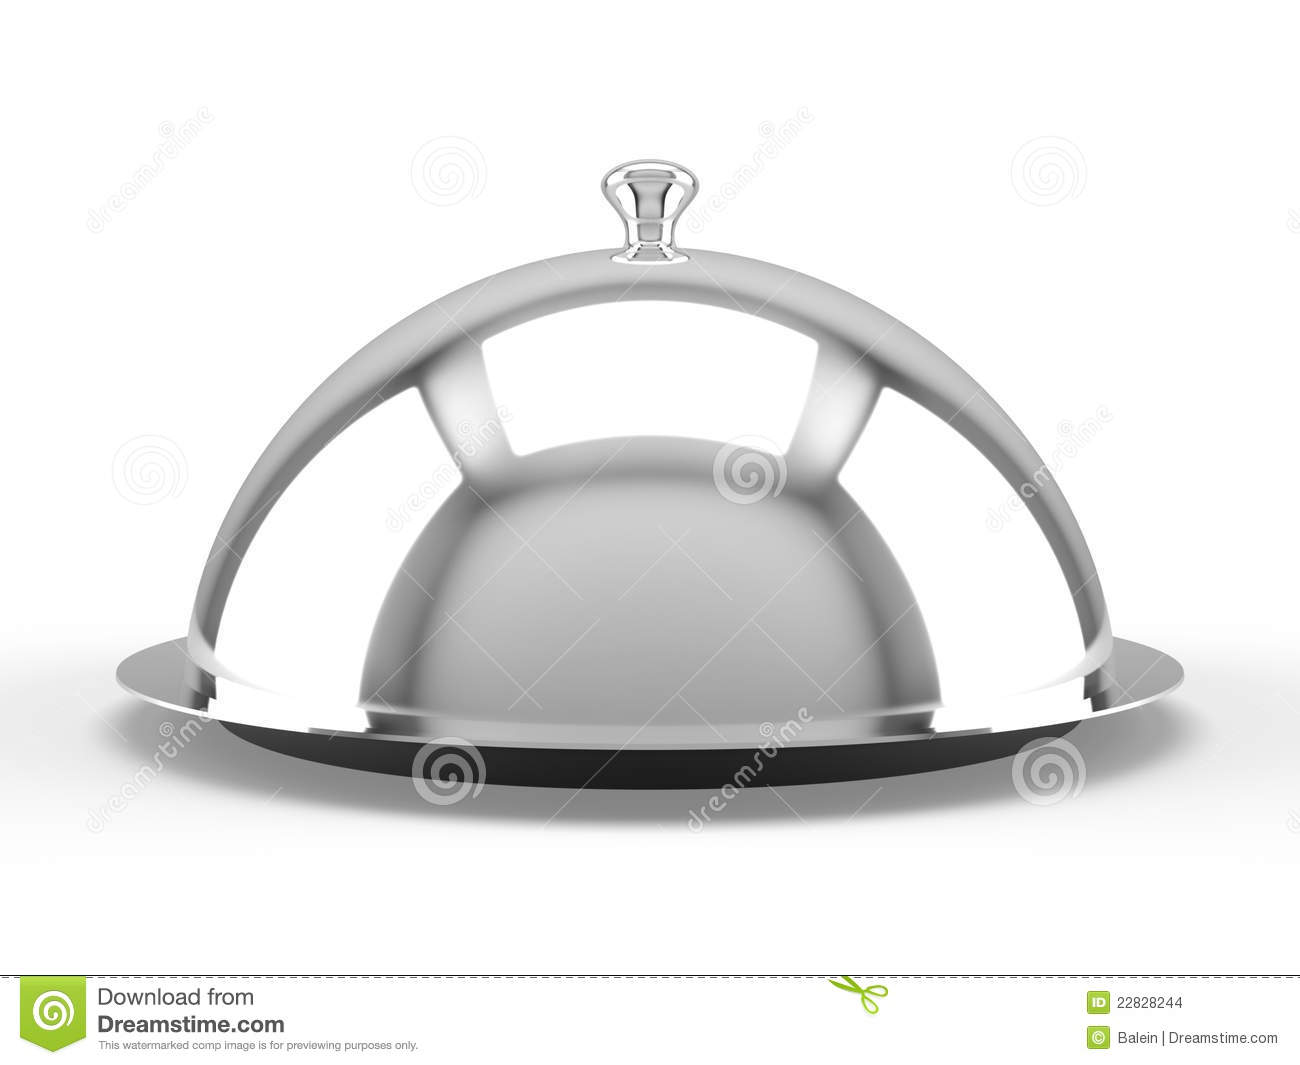 Cloche de restaurant images stock image 22828244 - Cloche de cuisine ...